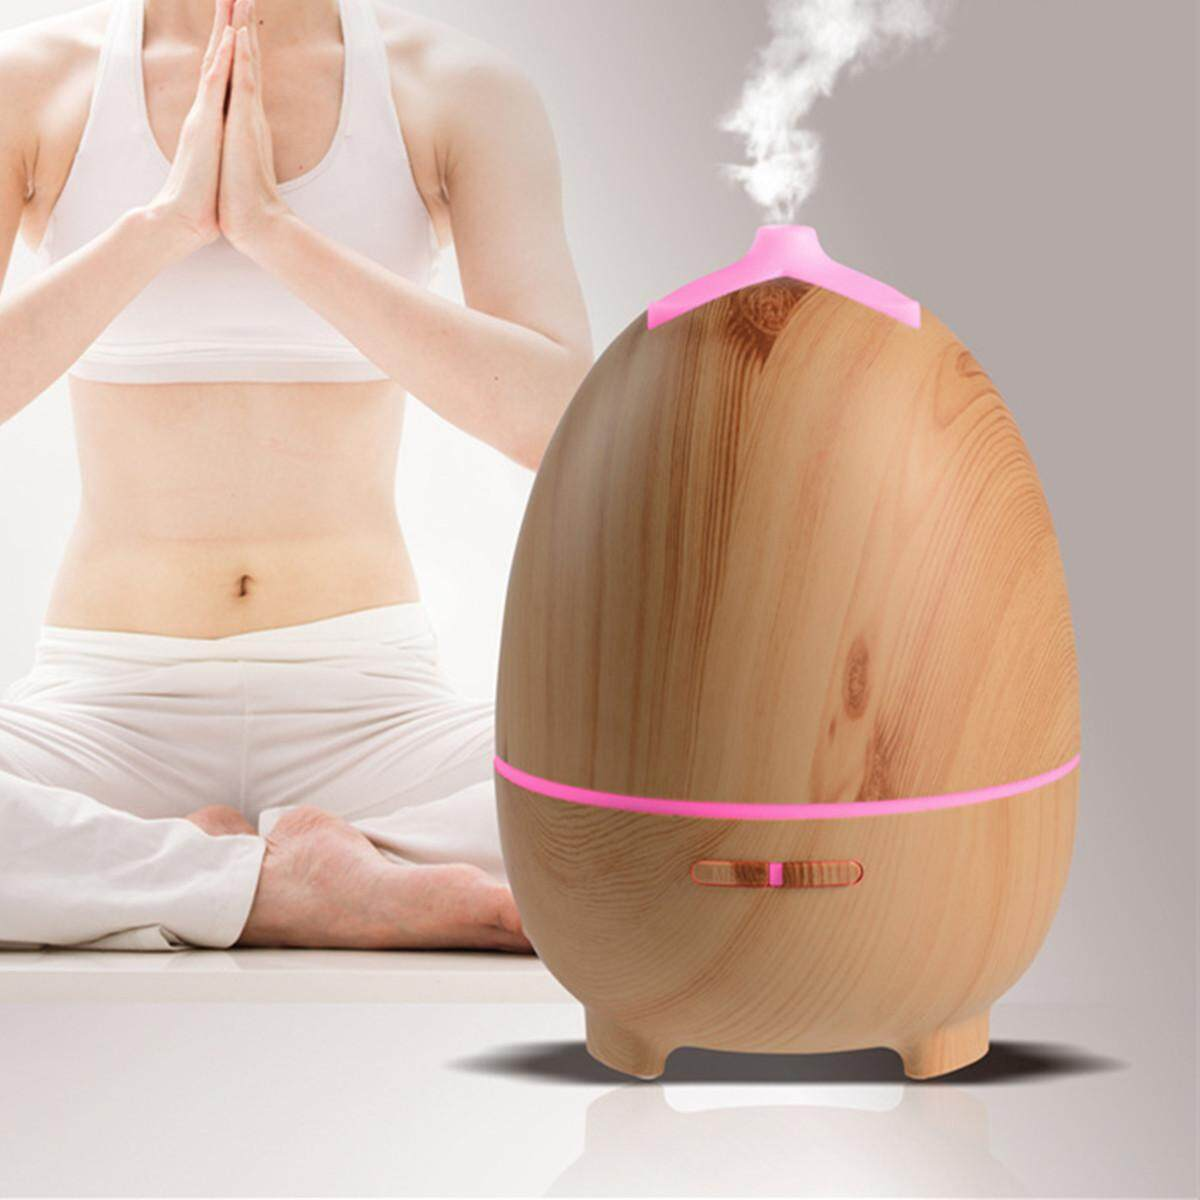 NEW Essential Oils Ultrasonic Aromatherapy Diffuser Air Humidifier Purify 300ML# US Plug